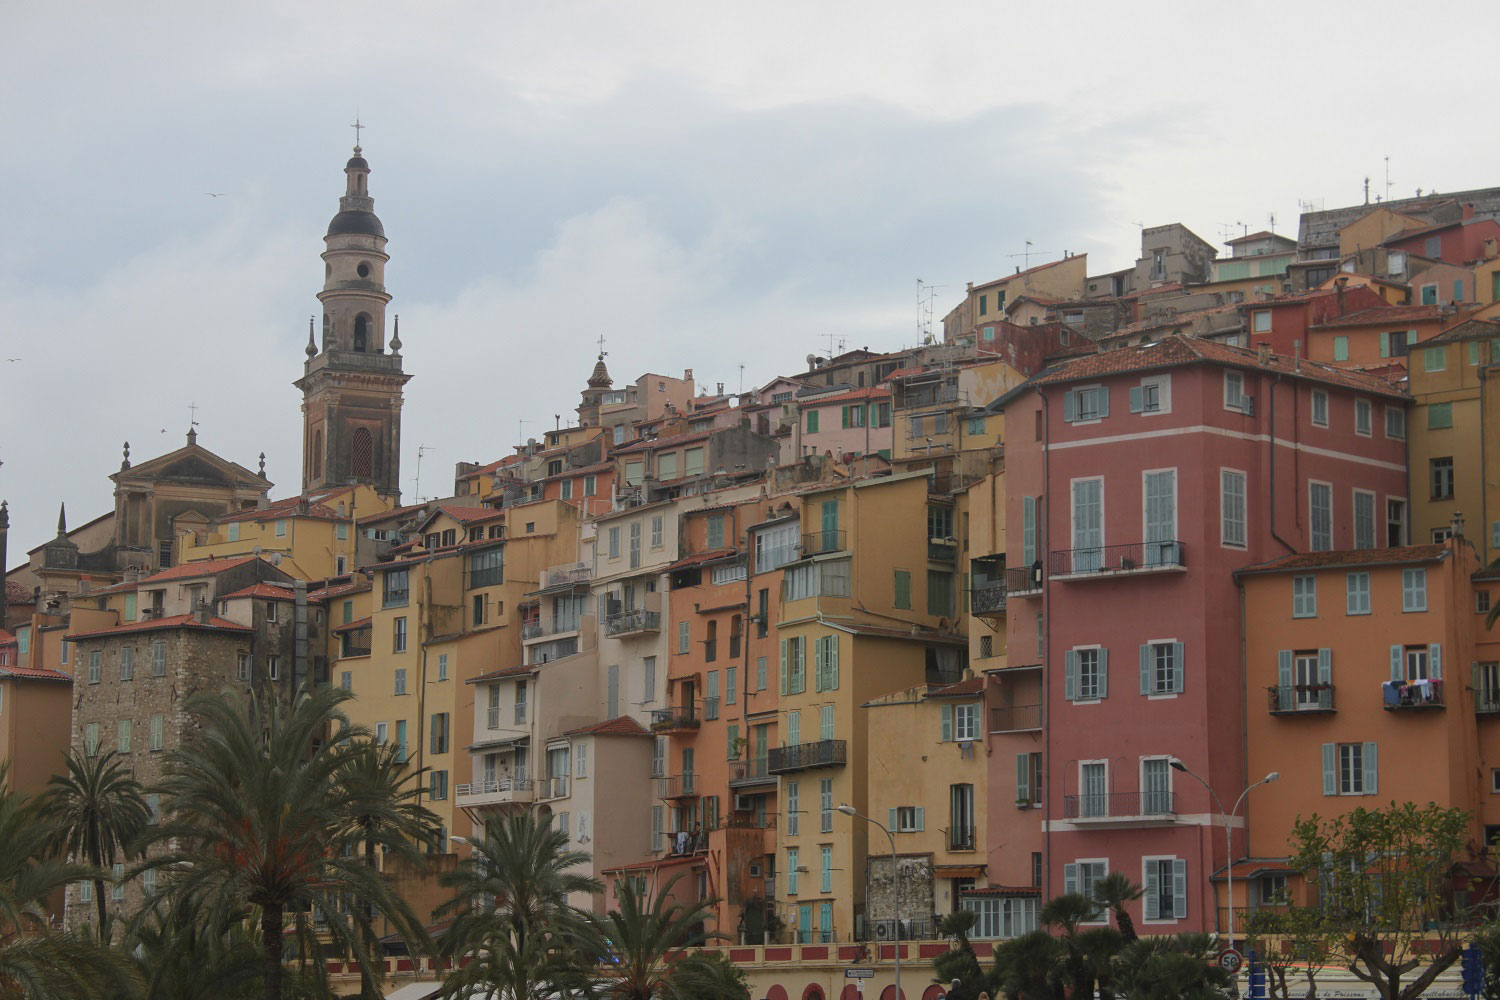 The beautiful colours of Menton